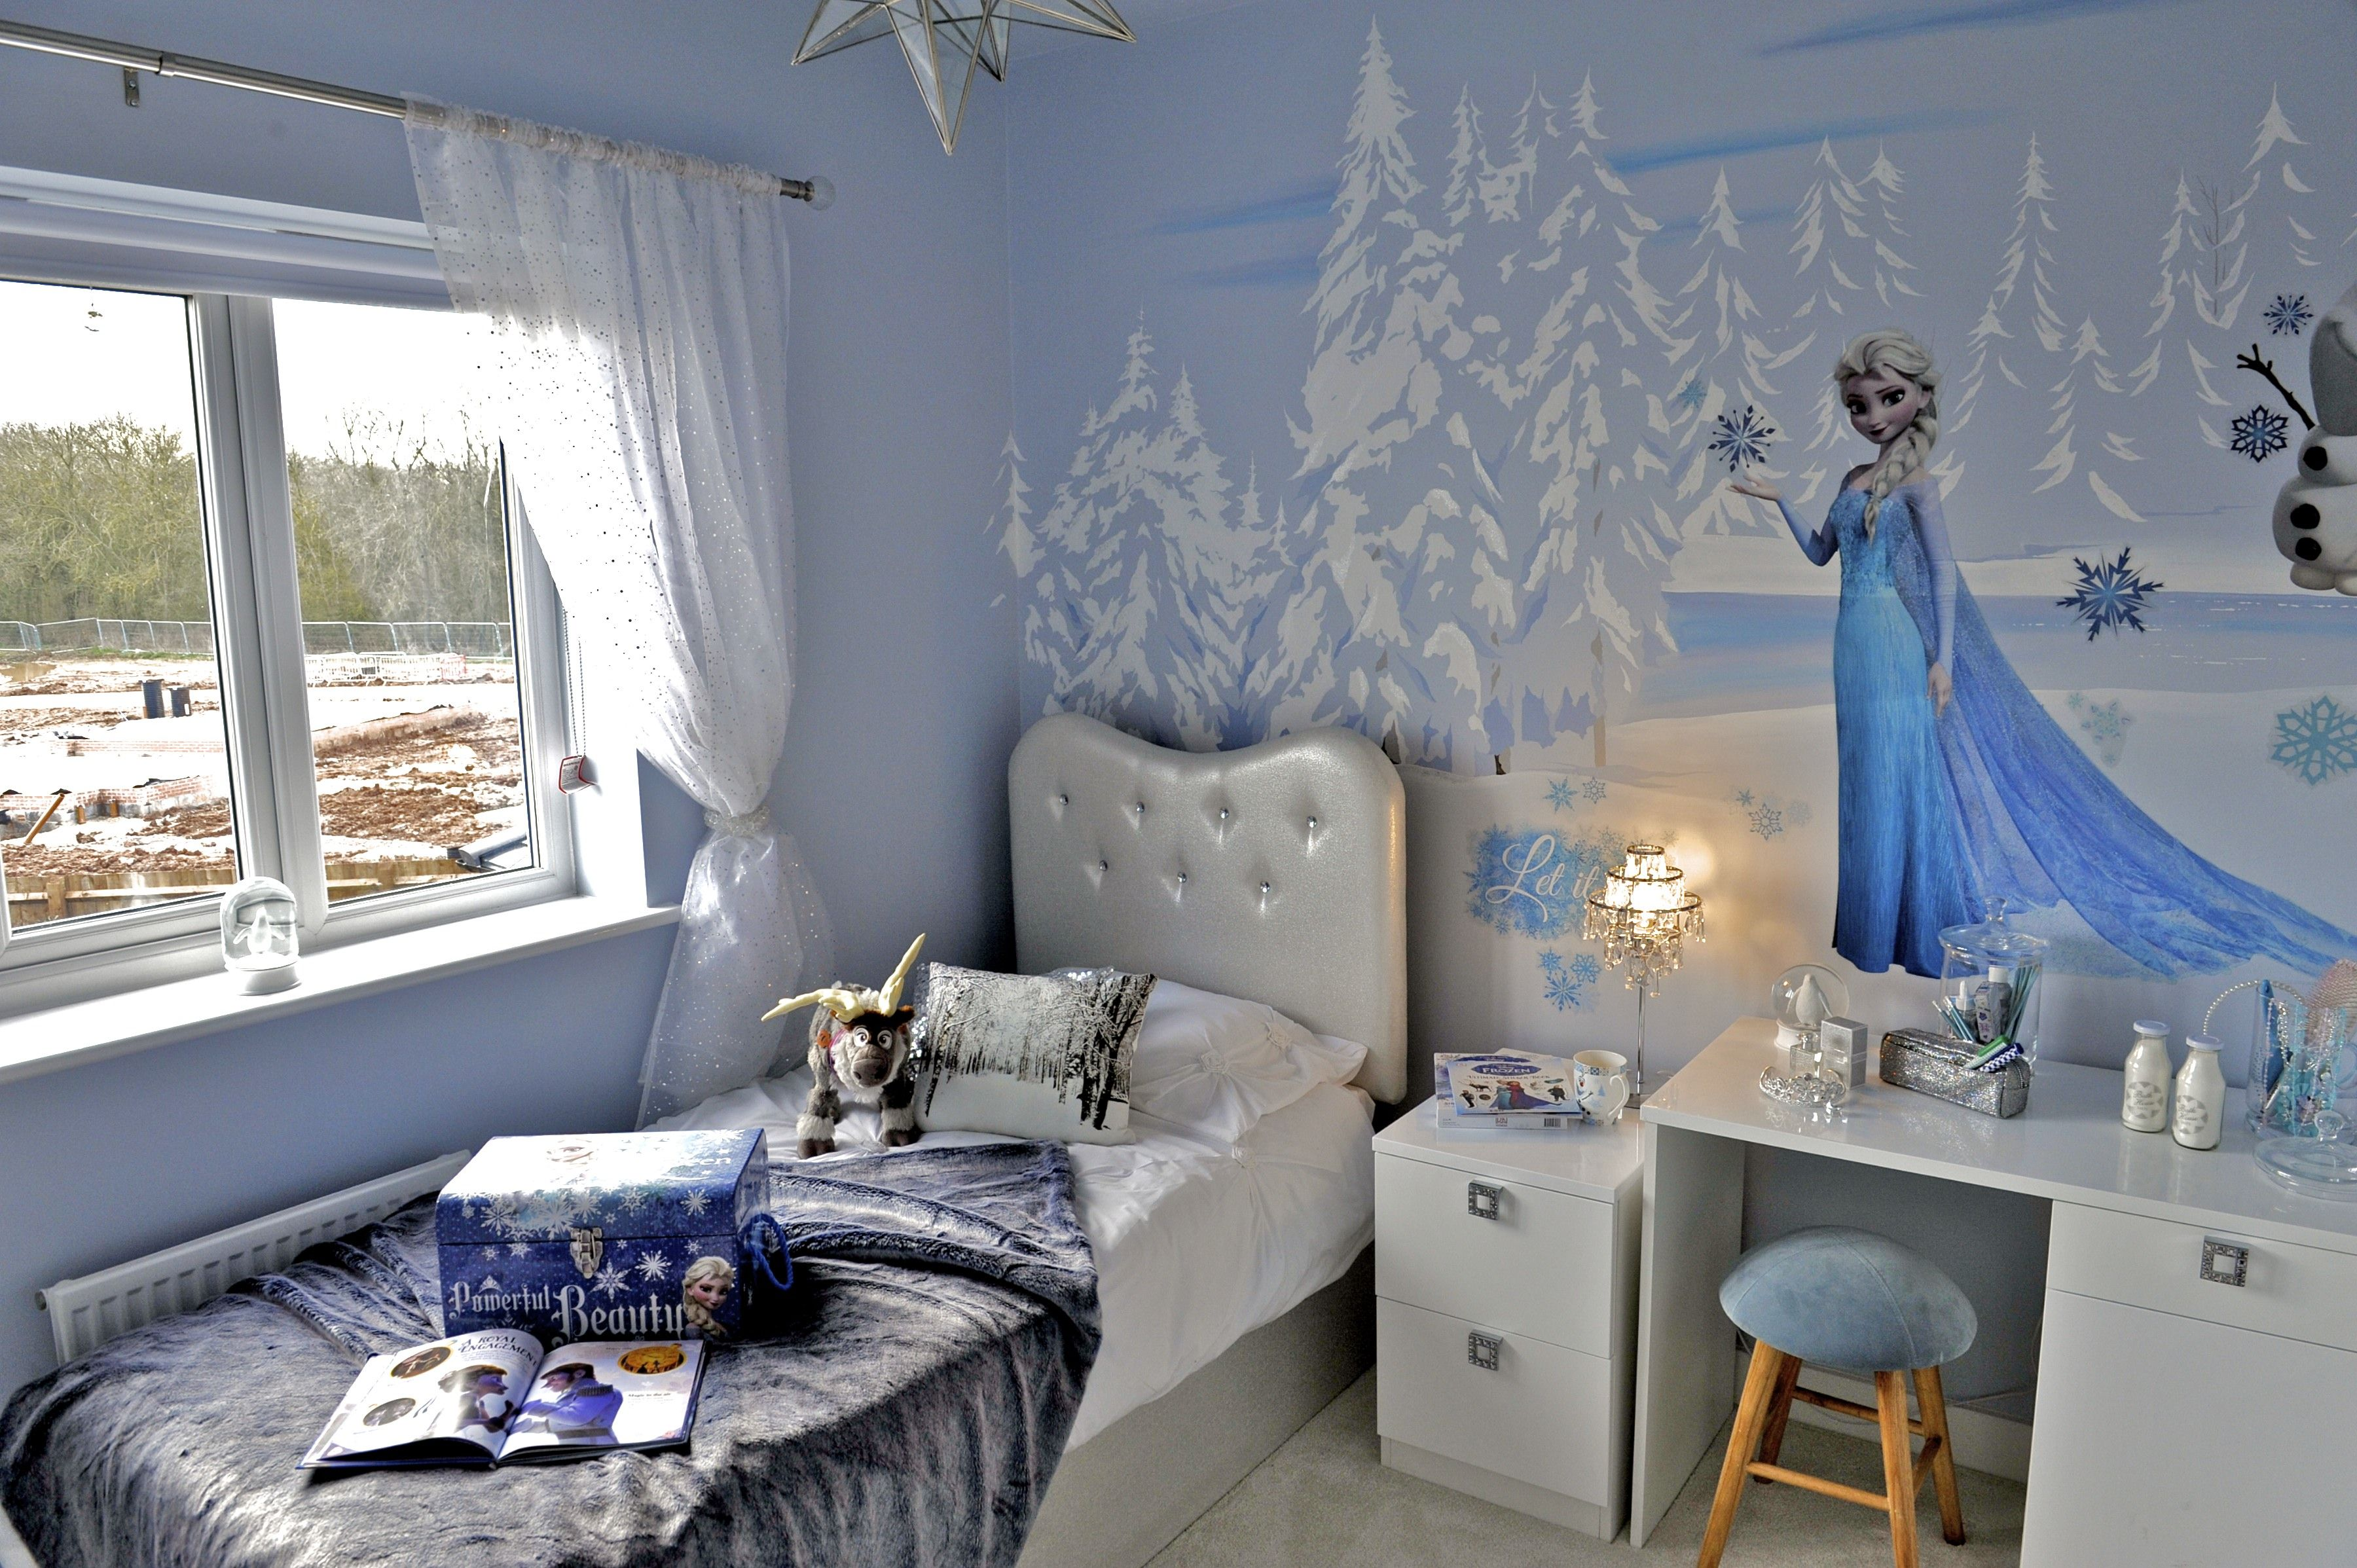 The Frozen Room Is Complete The Background Was Painted